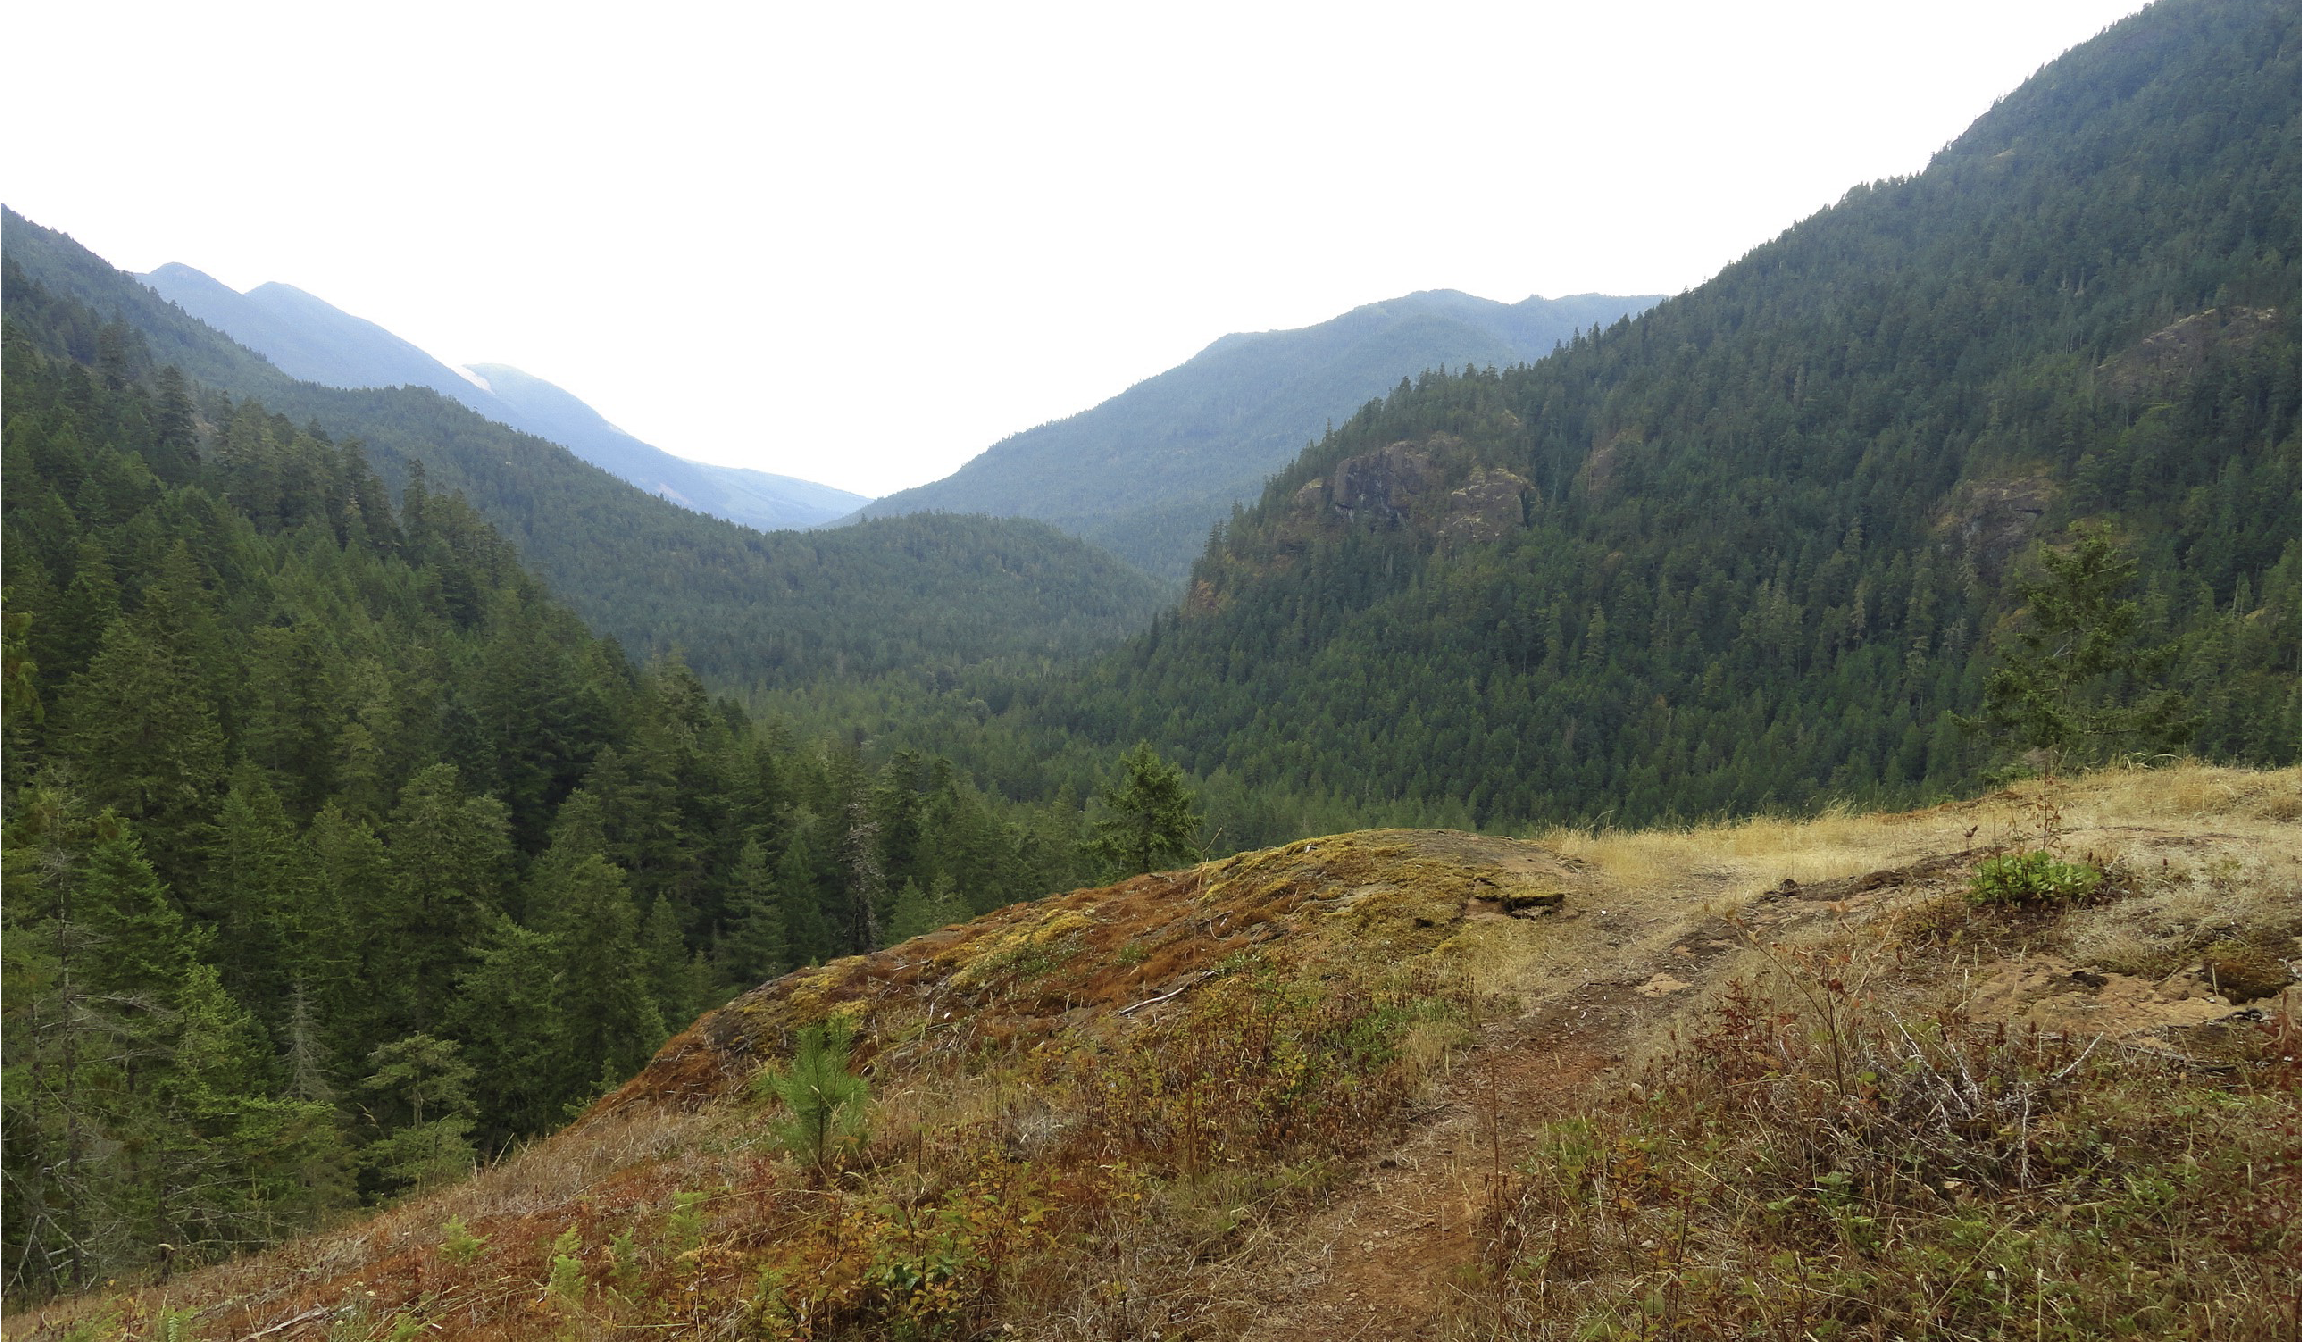 At a little over 3 miles come to a ledge with a spectacular view east down the river valley.